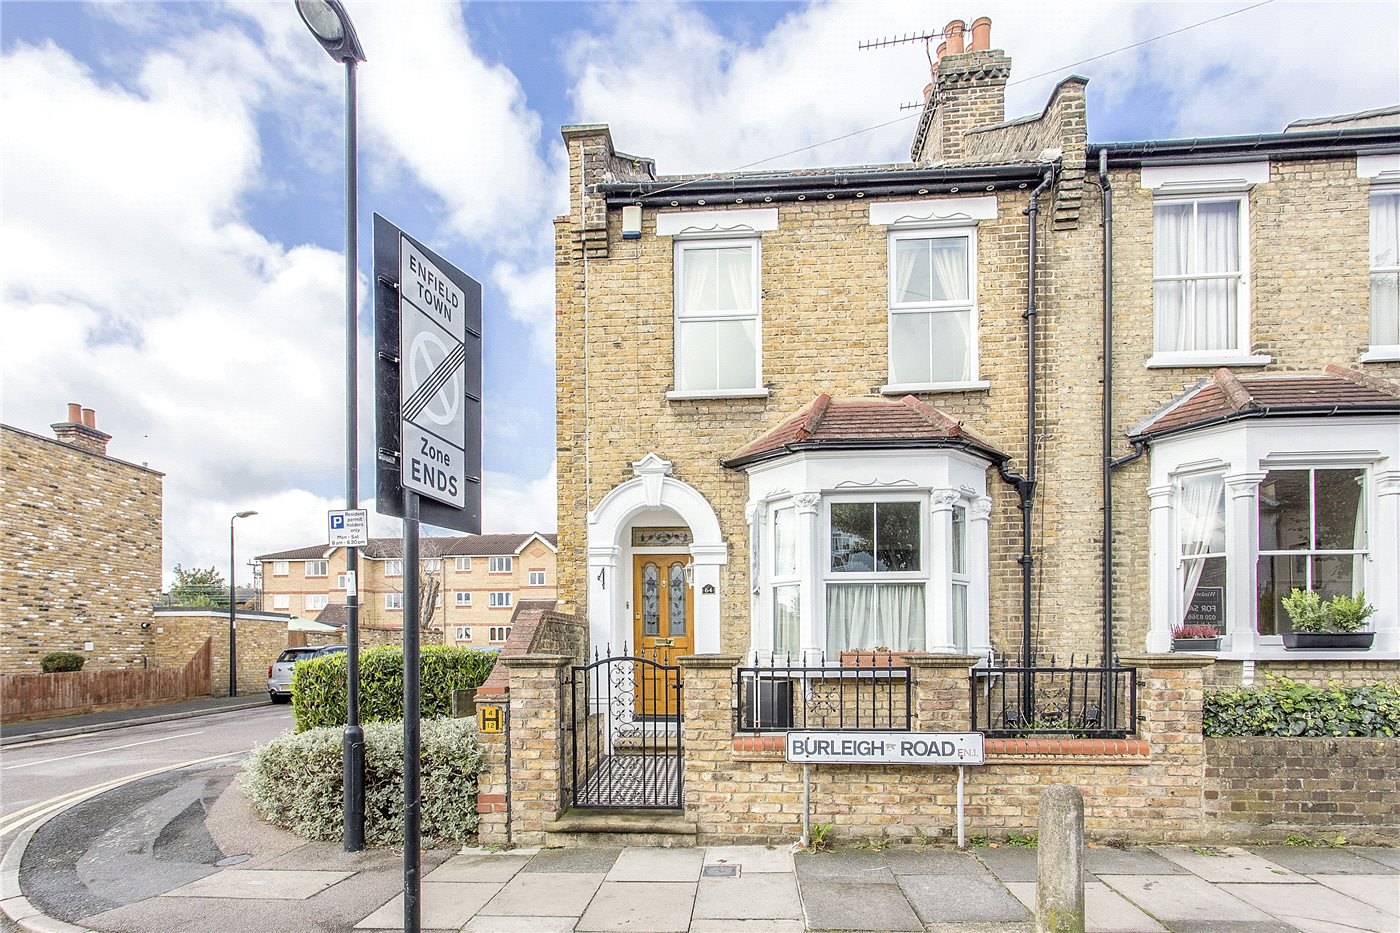 4 Bedrooms End Of Terrace House for sale in Burleigh Road, Enfield, EN1